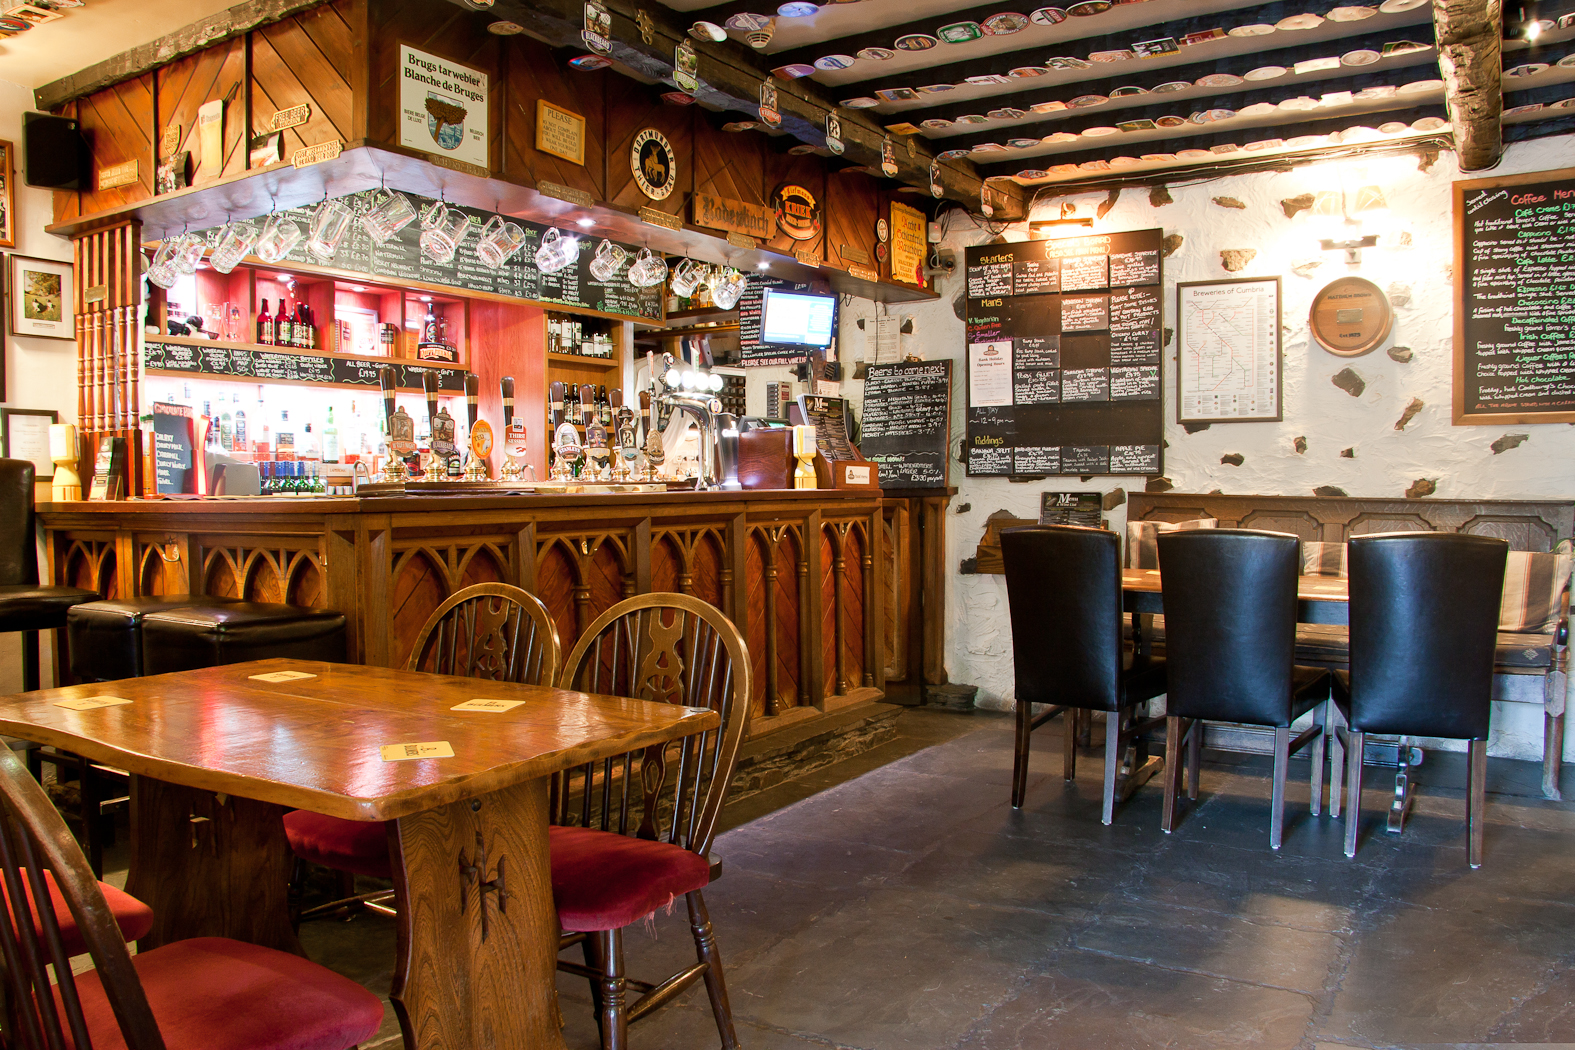 Take Three Uk Brewery Pub Hotels For Beer